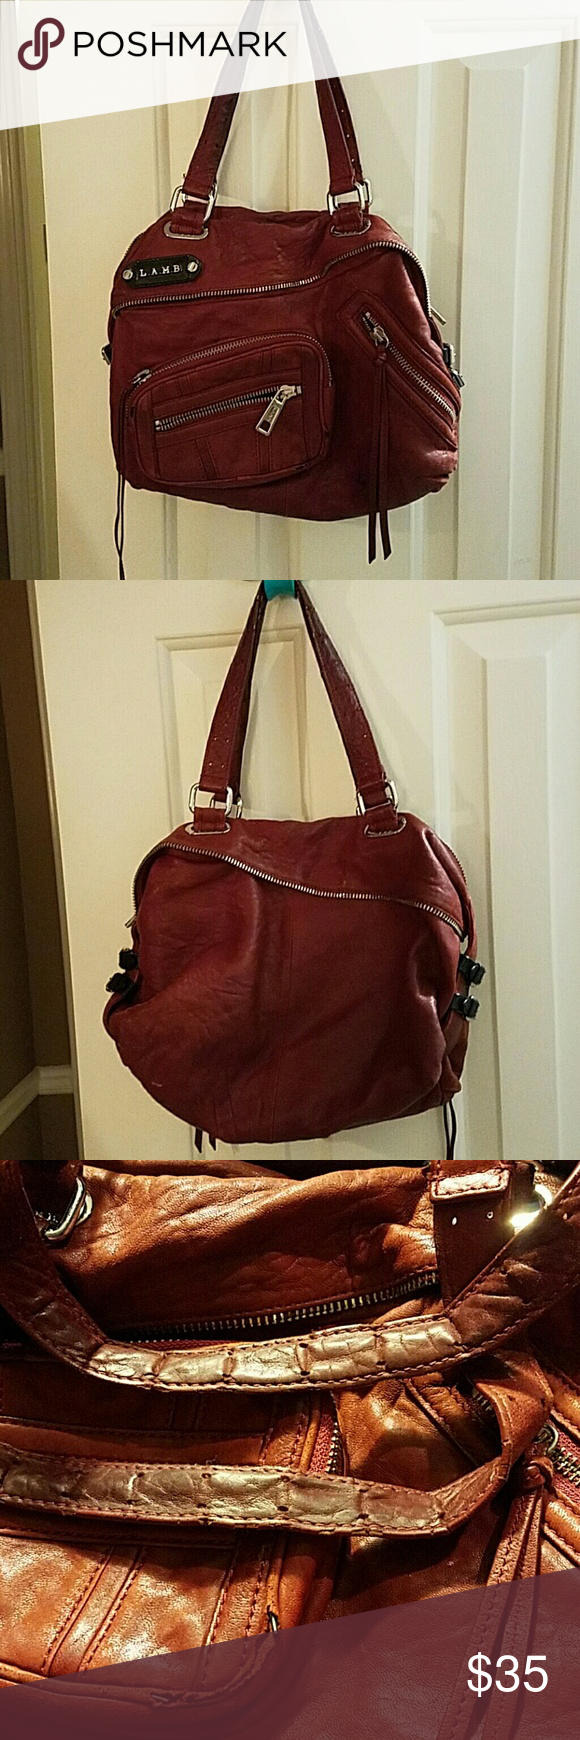 L.A.M.B Handbag Burgundy authentic L.a.m.b. bag all zippers working a day flaws are shown in the pictures. Good price reflects flaws but the bag is very clean inside. L.A.M.B. Bags